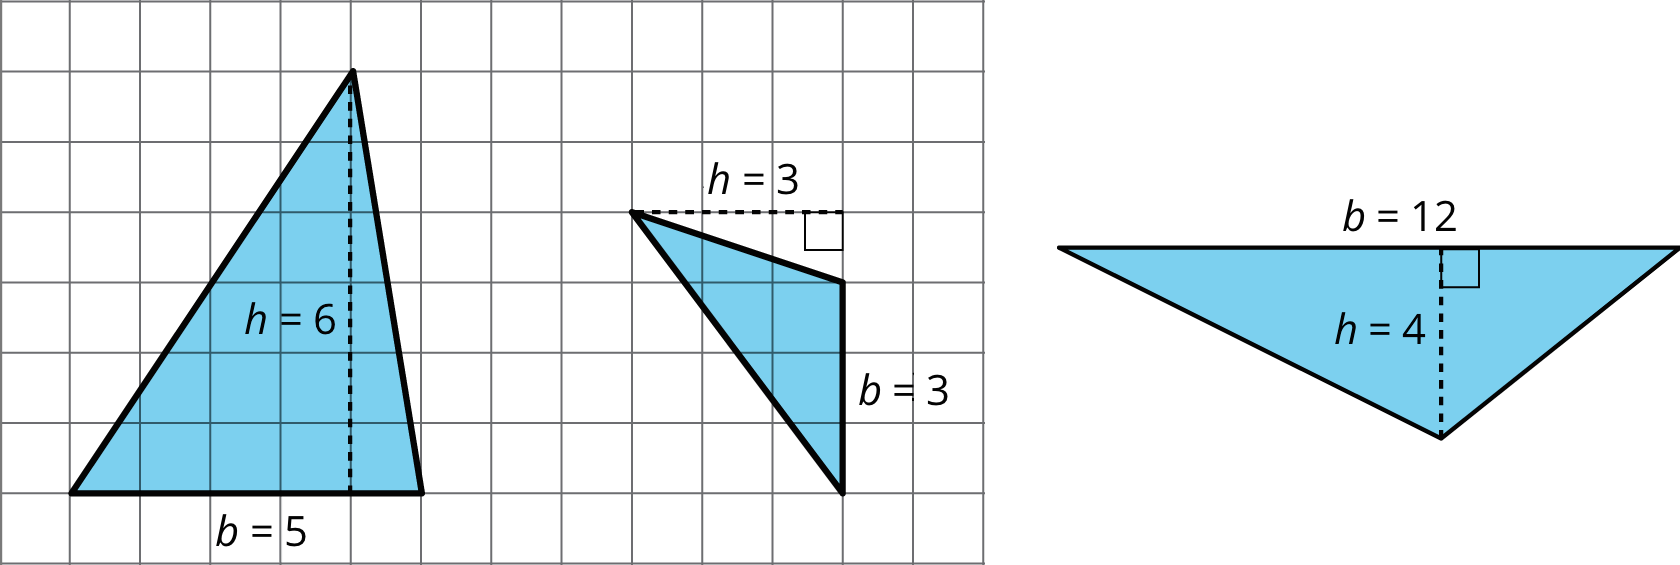 Three figures: triangle A with base 5 and height 6; triangle B with base 3 and height 3; triangle C with base 12 and height 4.